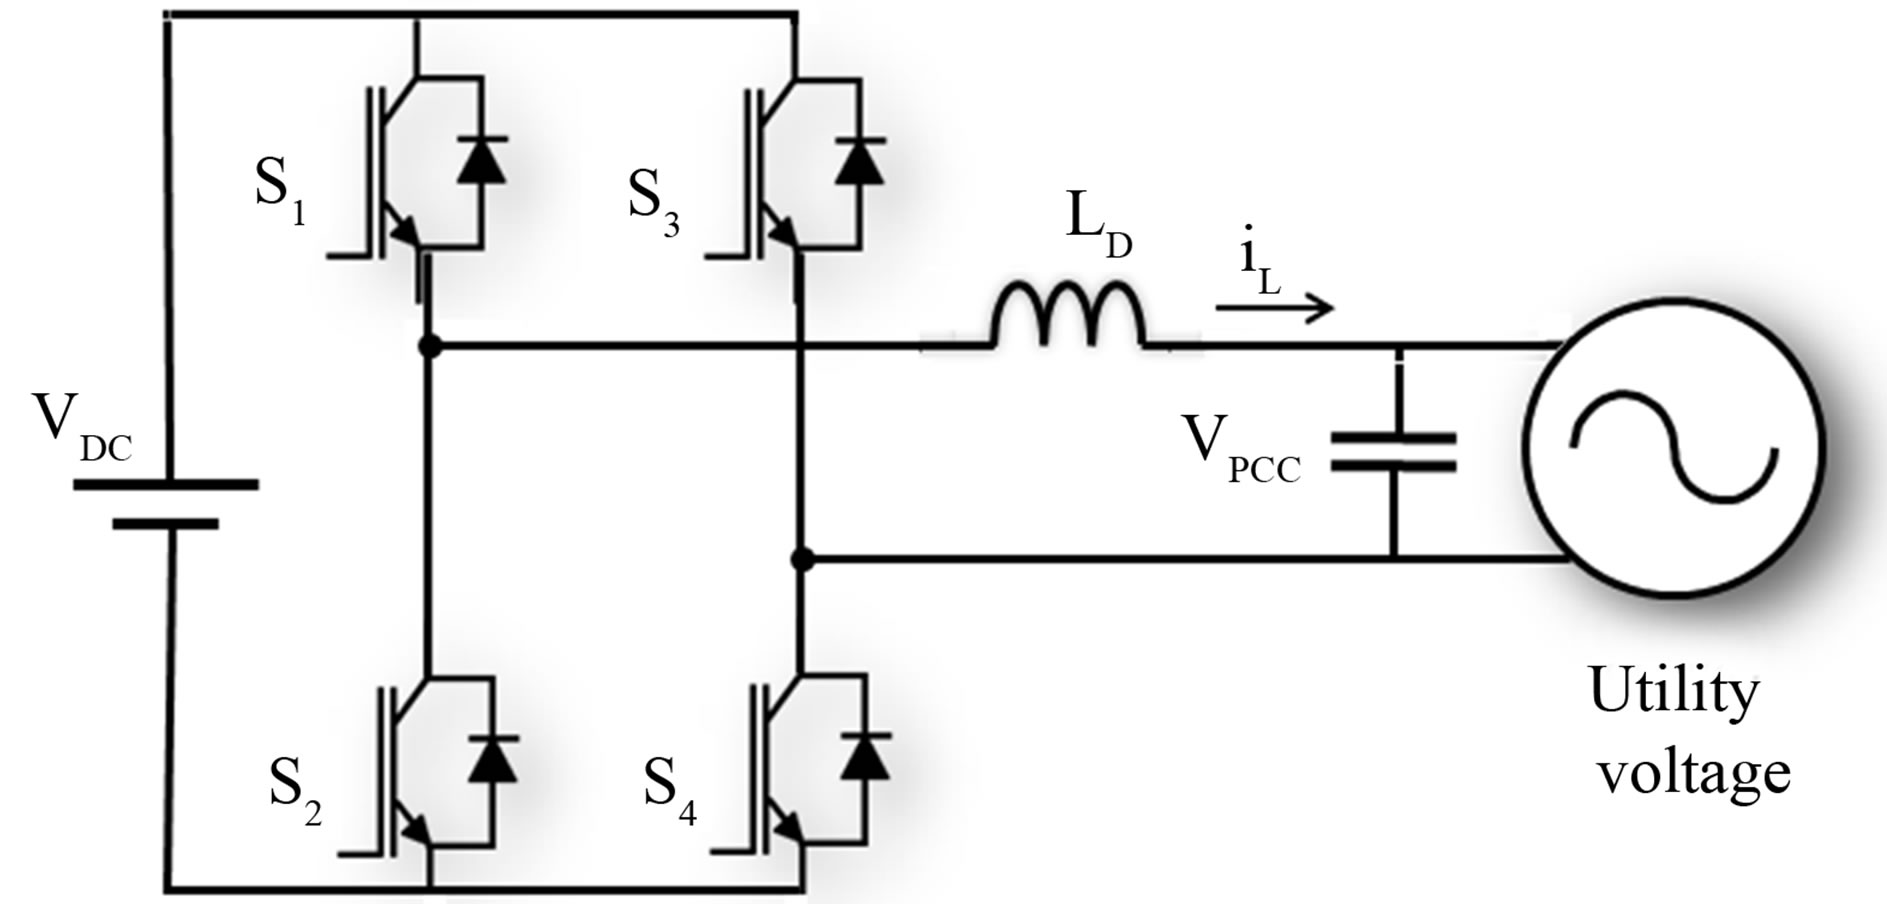 Fpga Implementation Of Predictive Hysteresis Current Control For Grid Connected Vsi